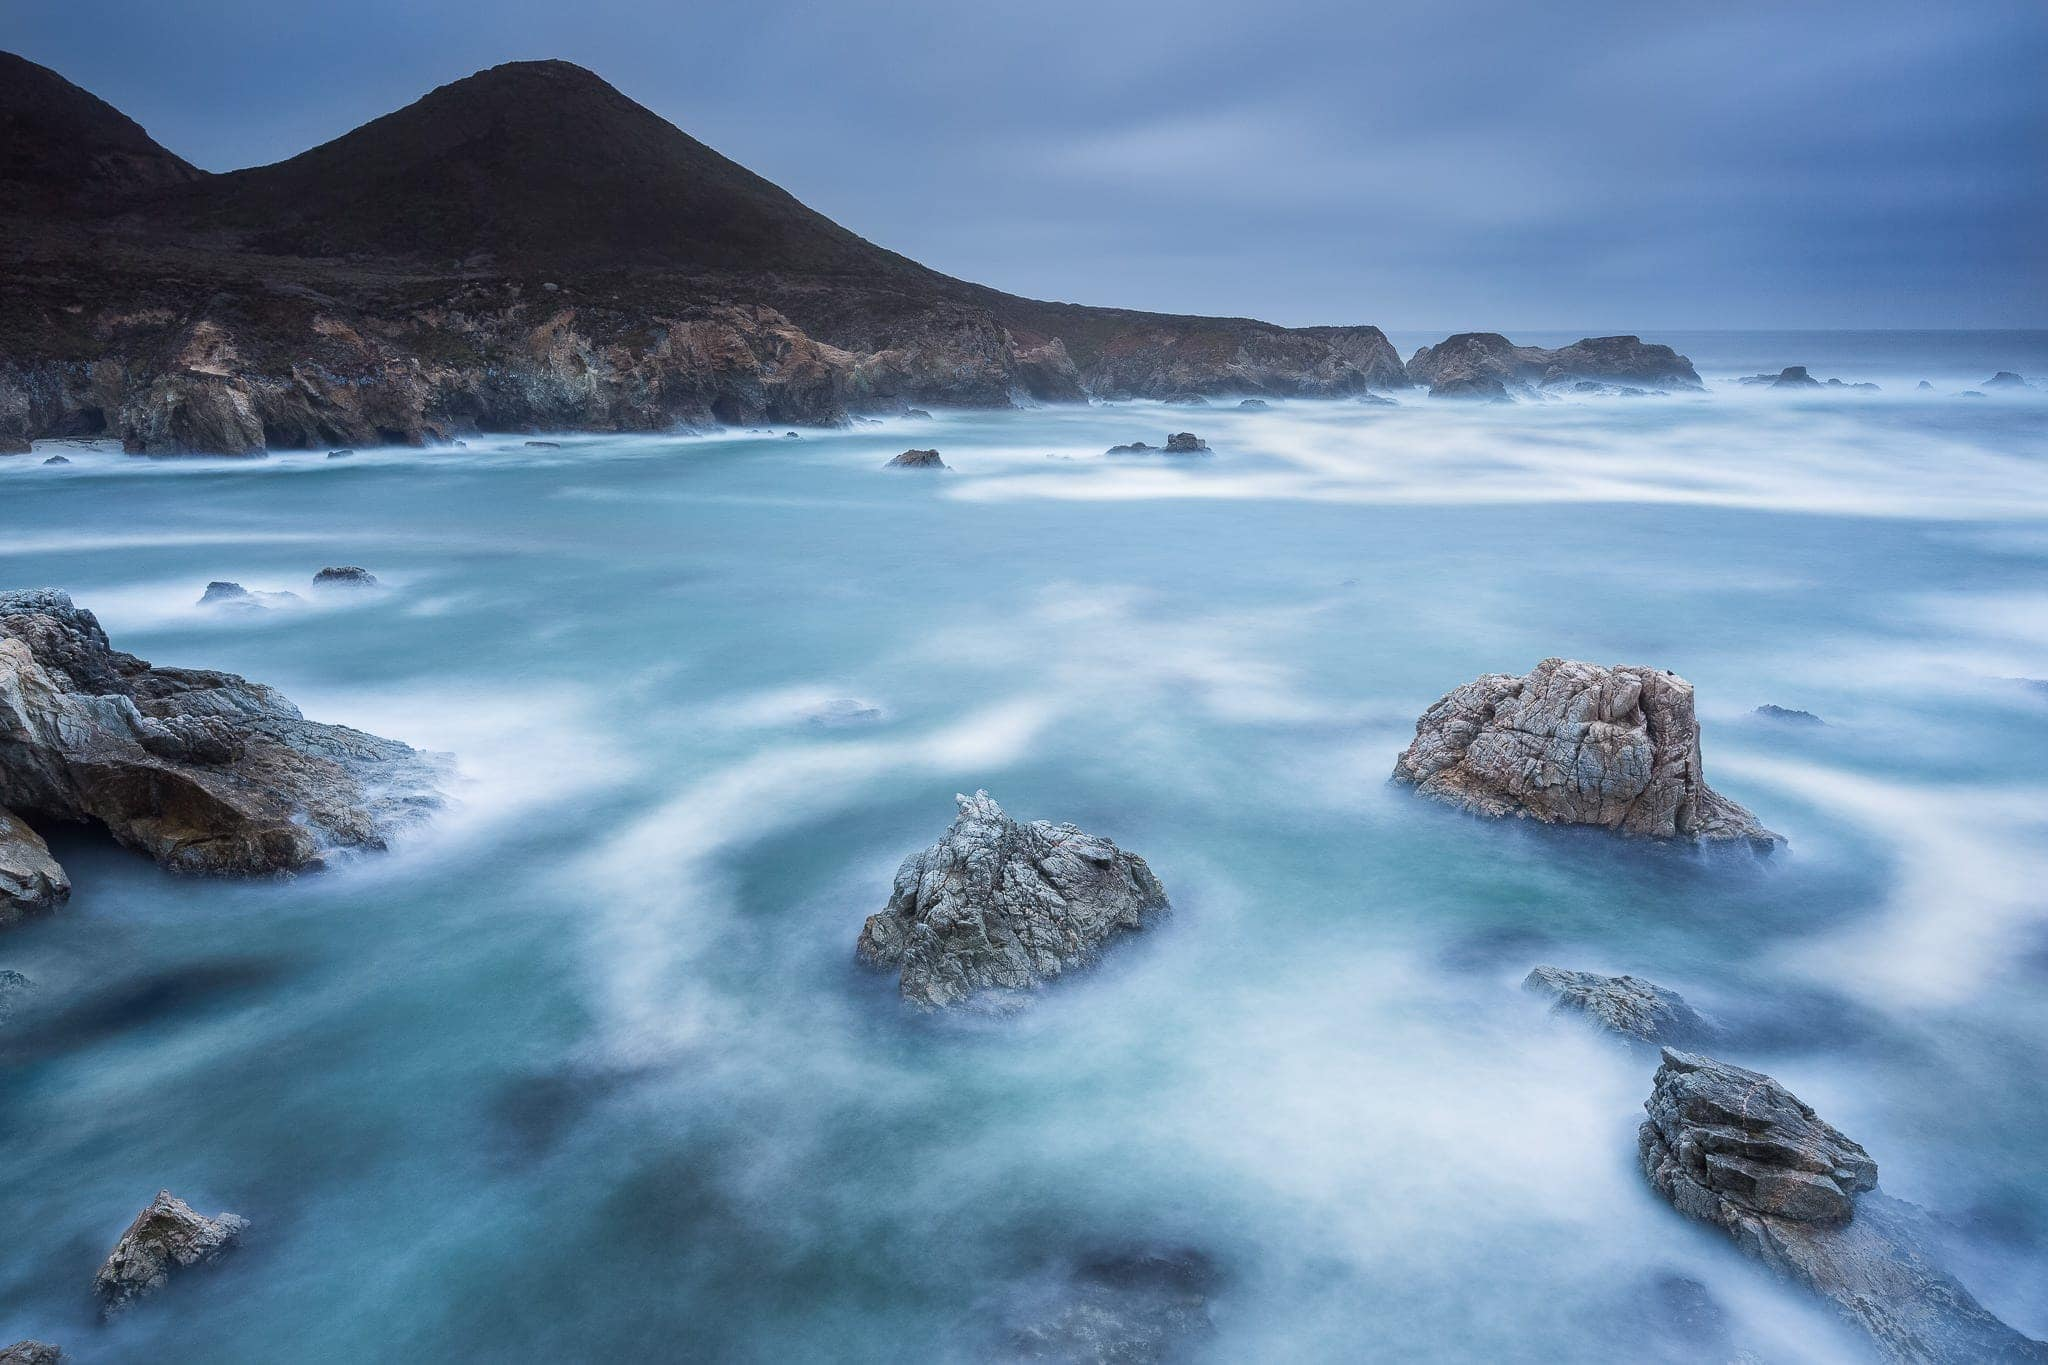 Francesco Gola Seascape Landscape Photography Long Exposure Big Sur California Storm